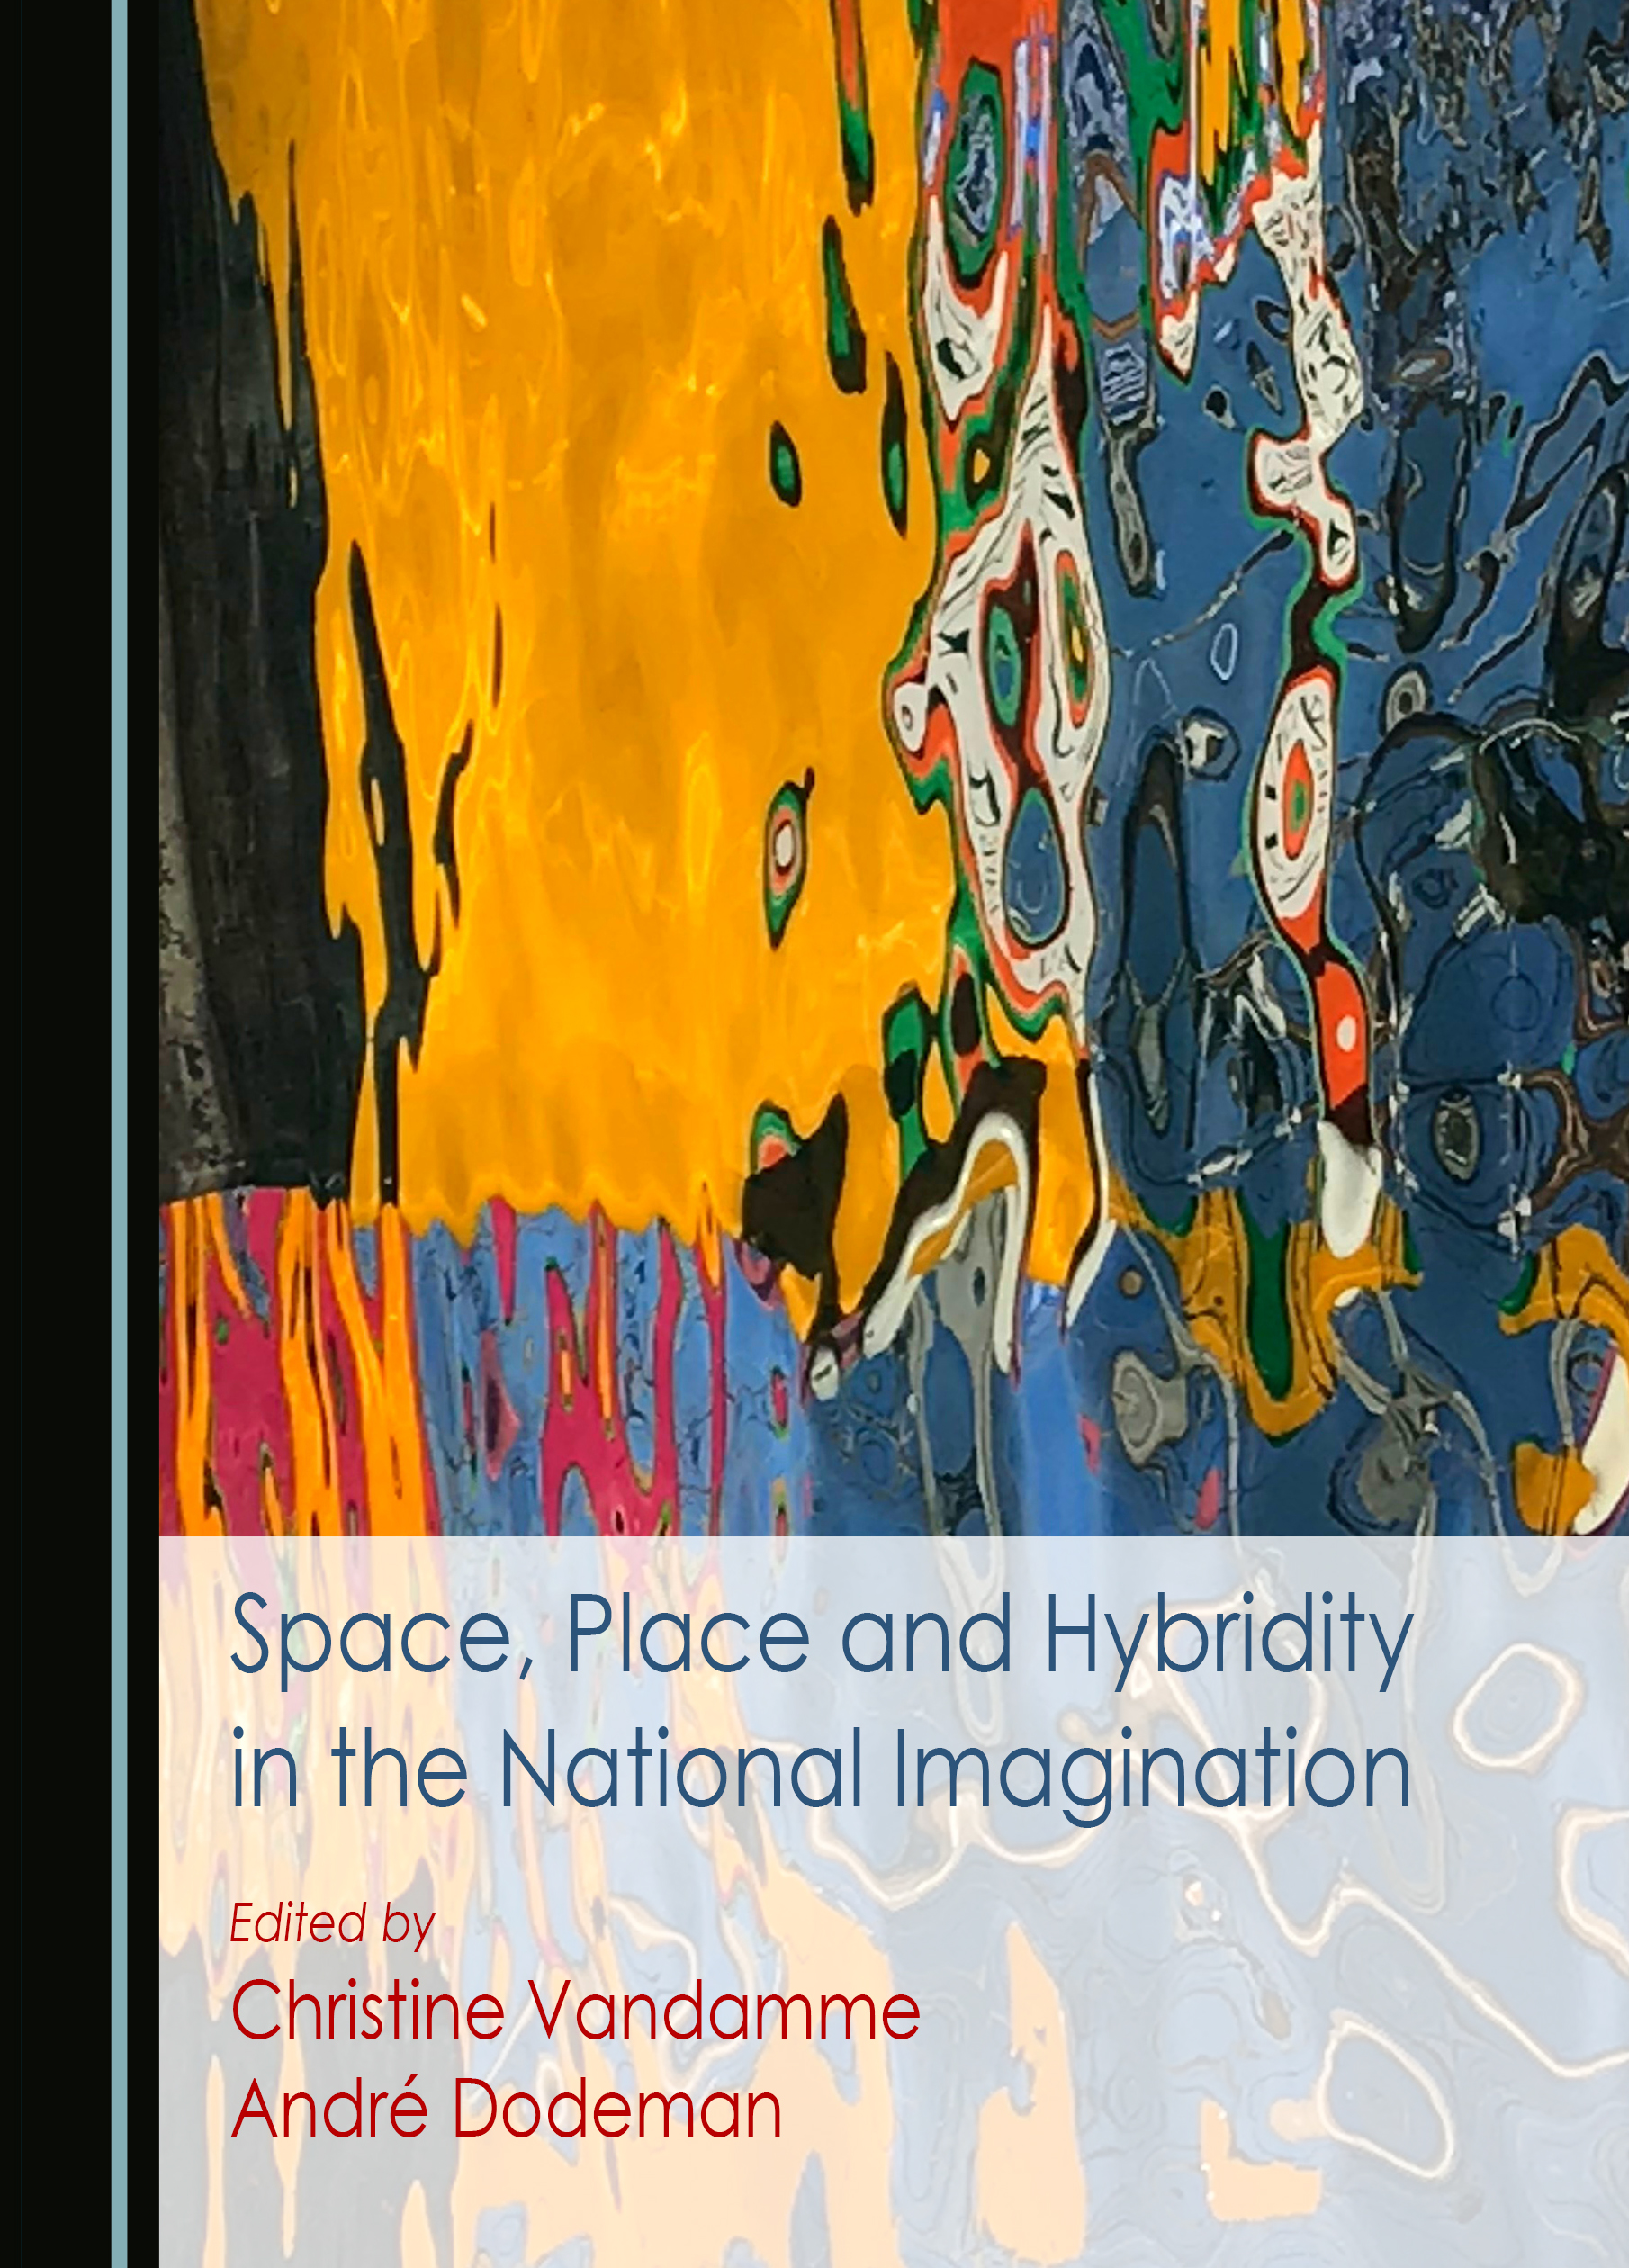 Space, Place and Hybridity in the National Imagination